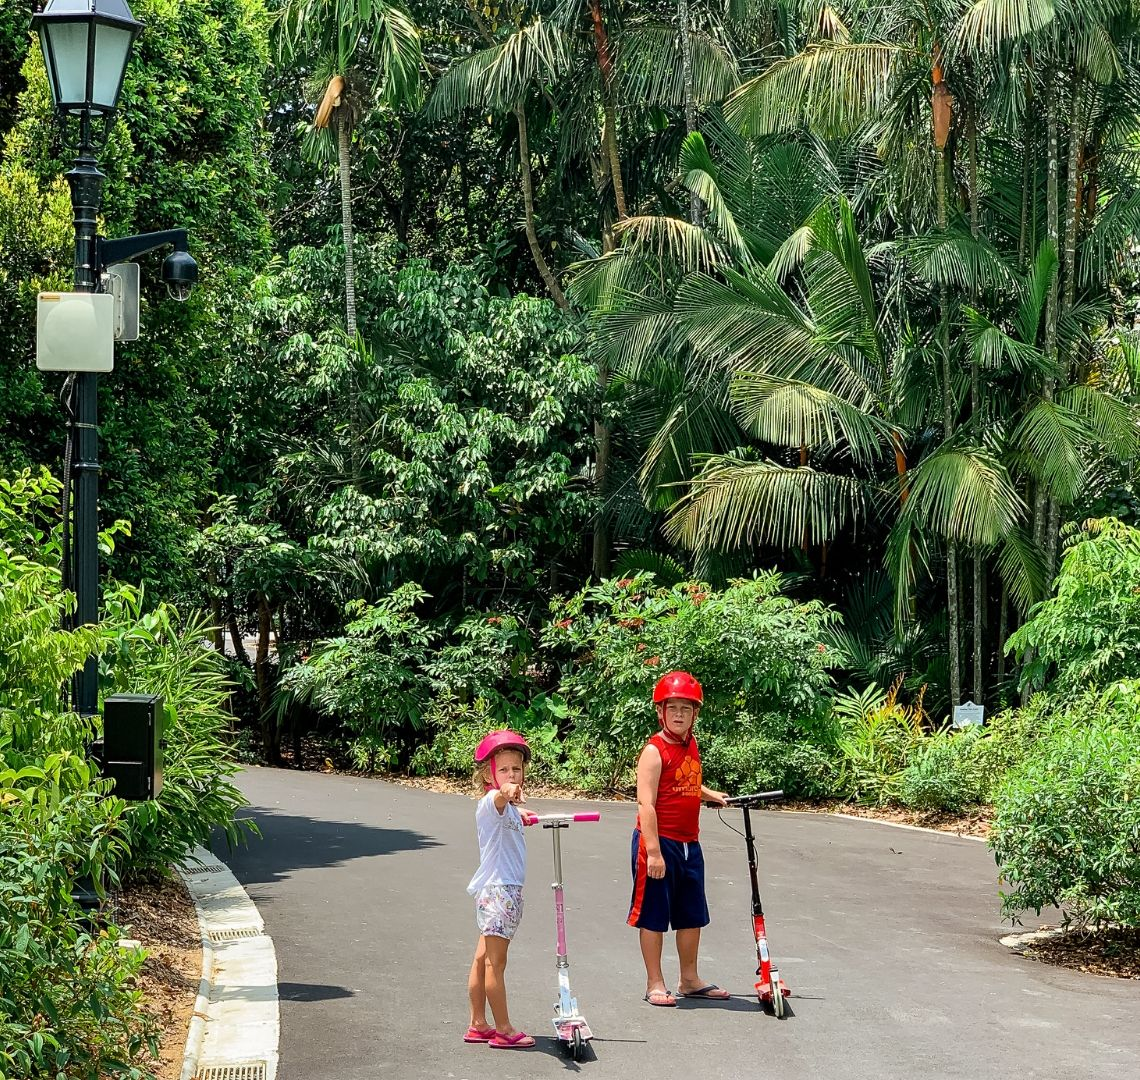 Back from a break - the Things stood waiting for me on their scooters on a oath in Singapore's Botanical Gardens